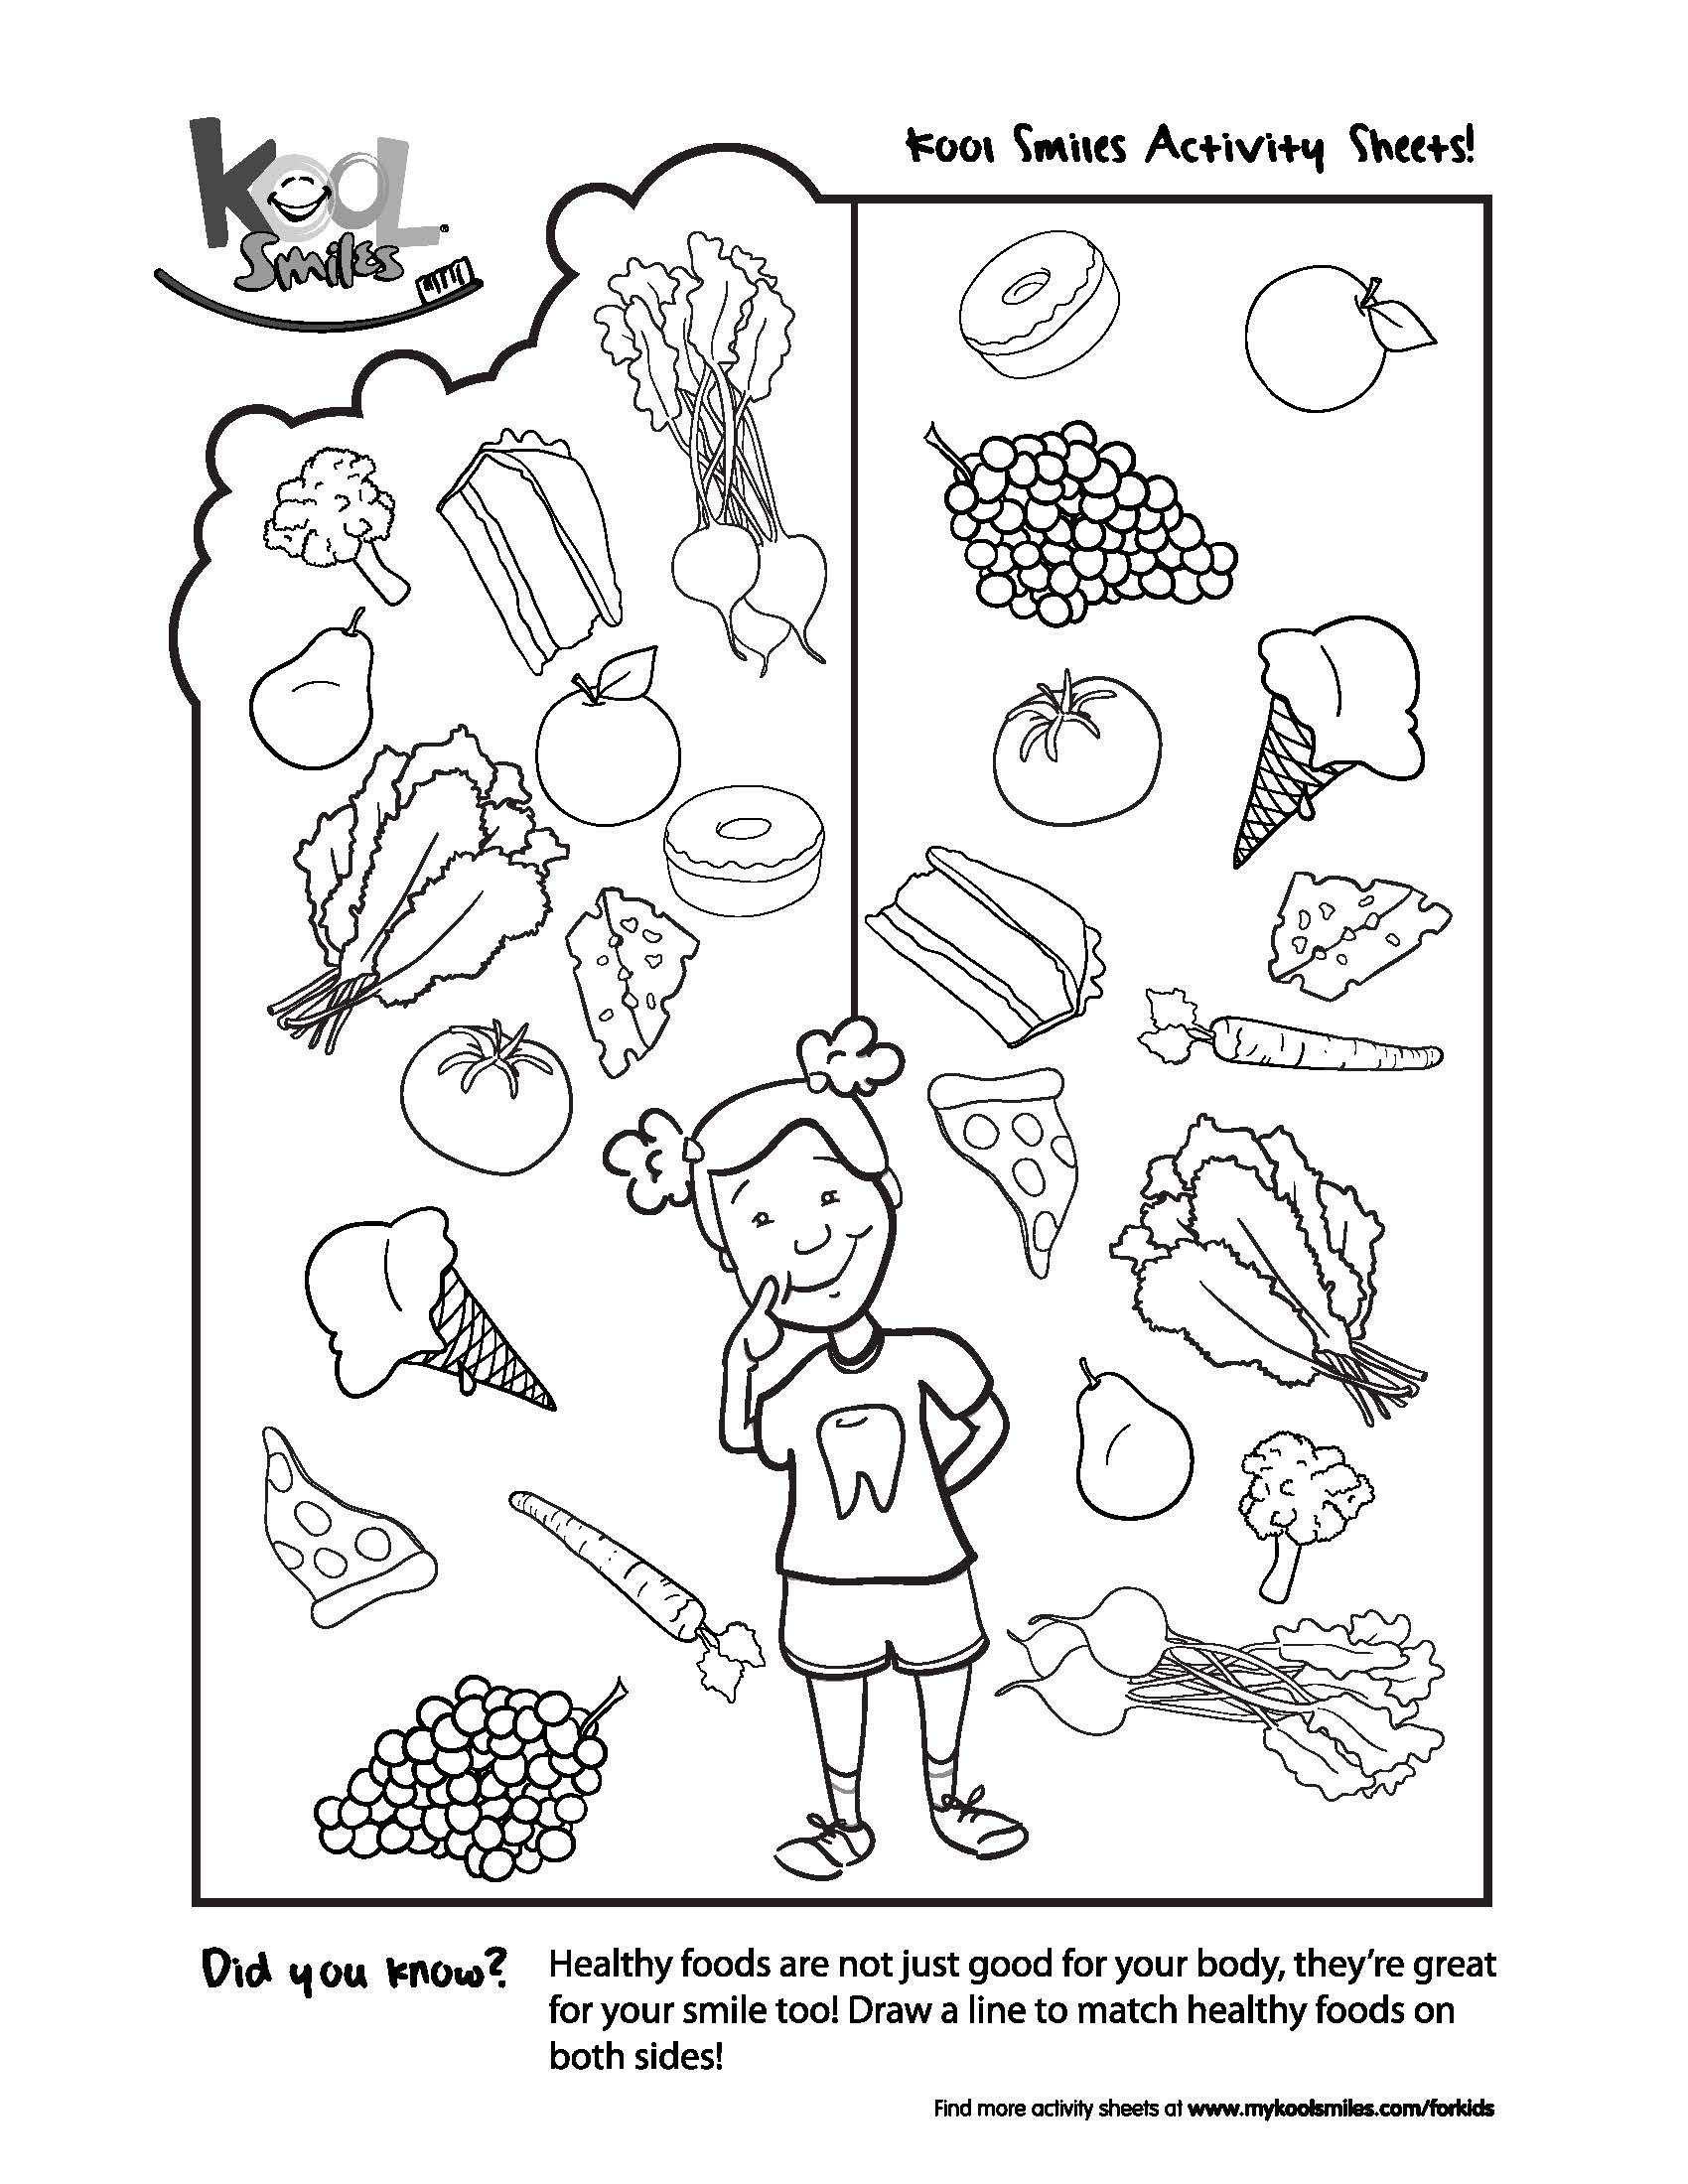 Can You Pick Out The Healthy Foods In This Activity Sheet